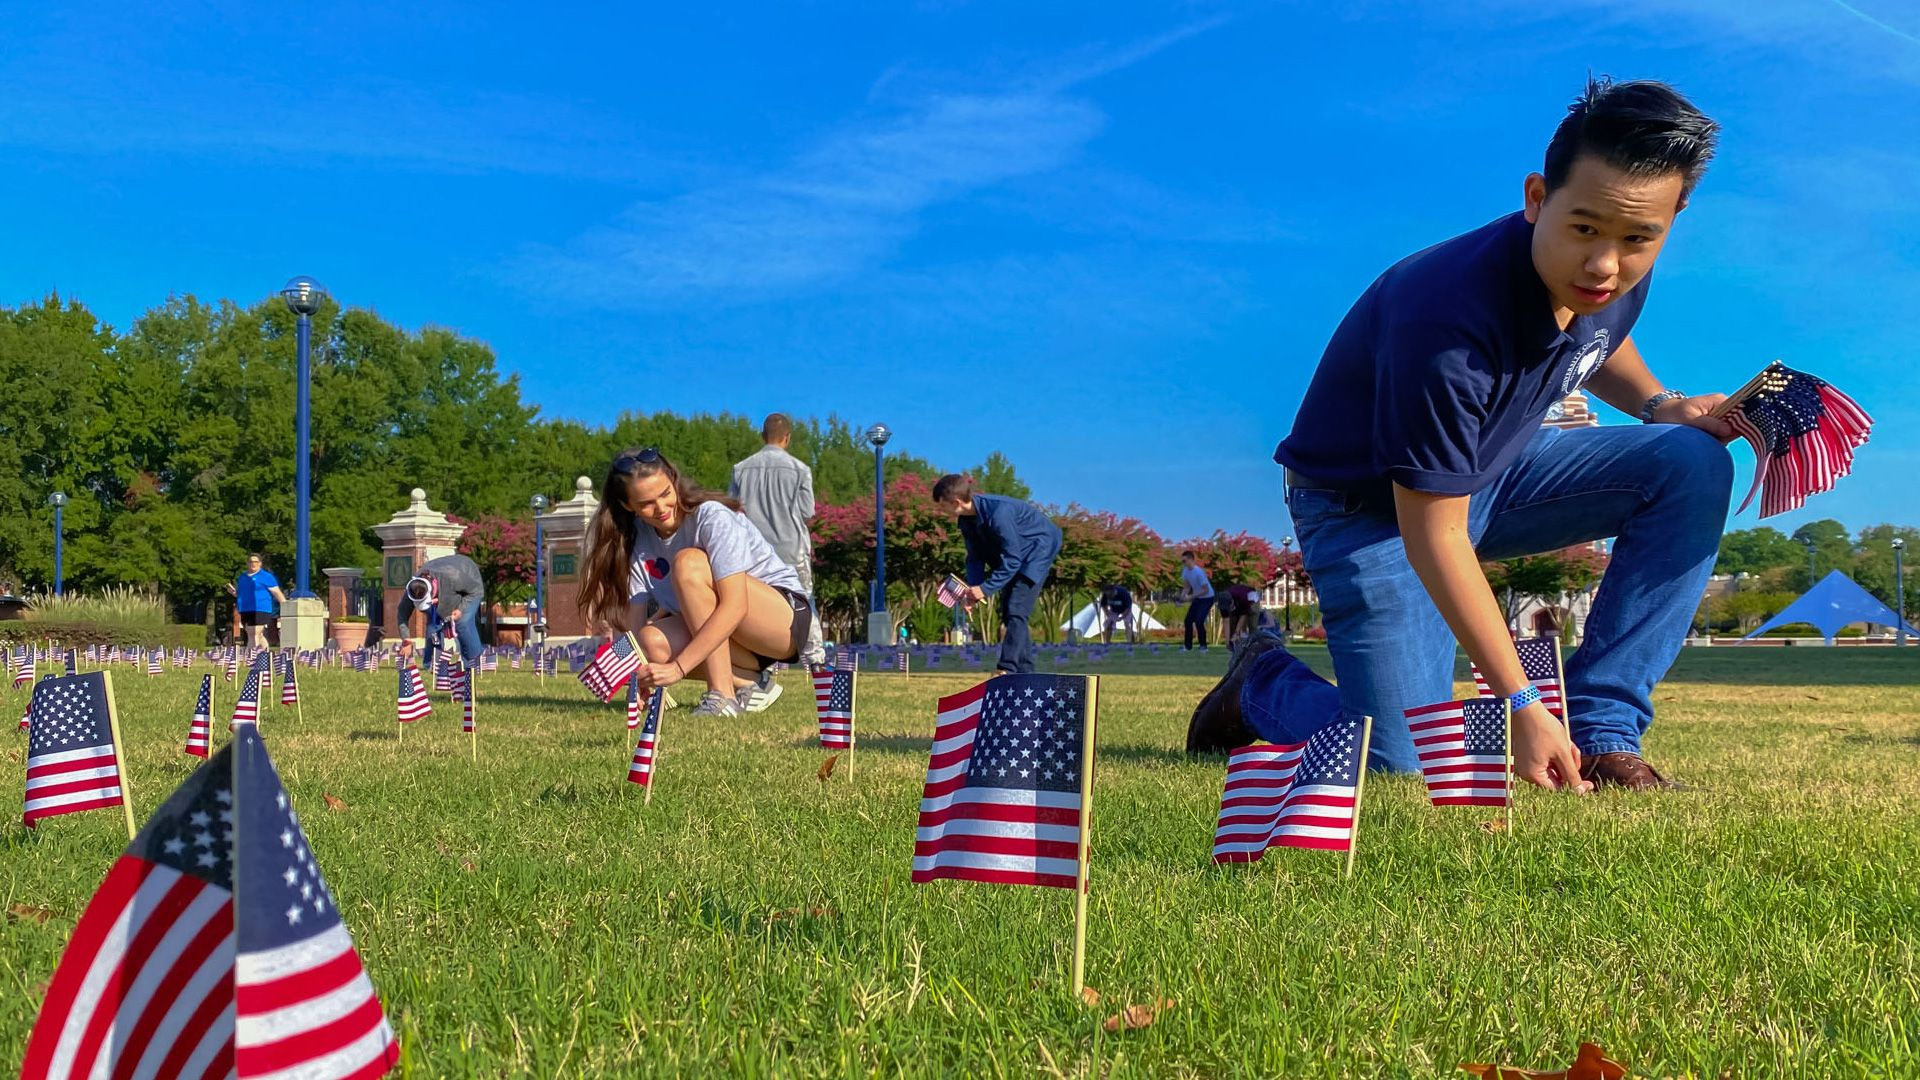 UAFS and community observe Sept. 11 with display and activities